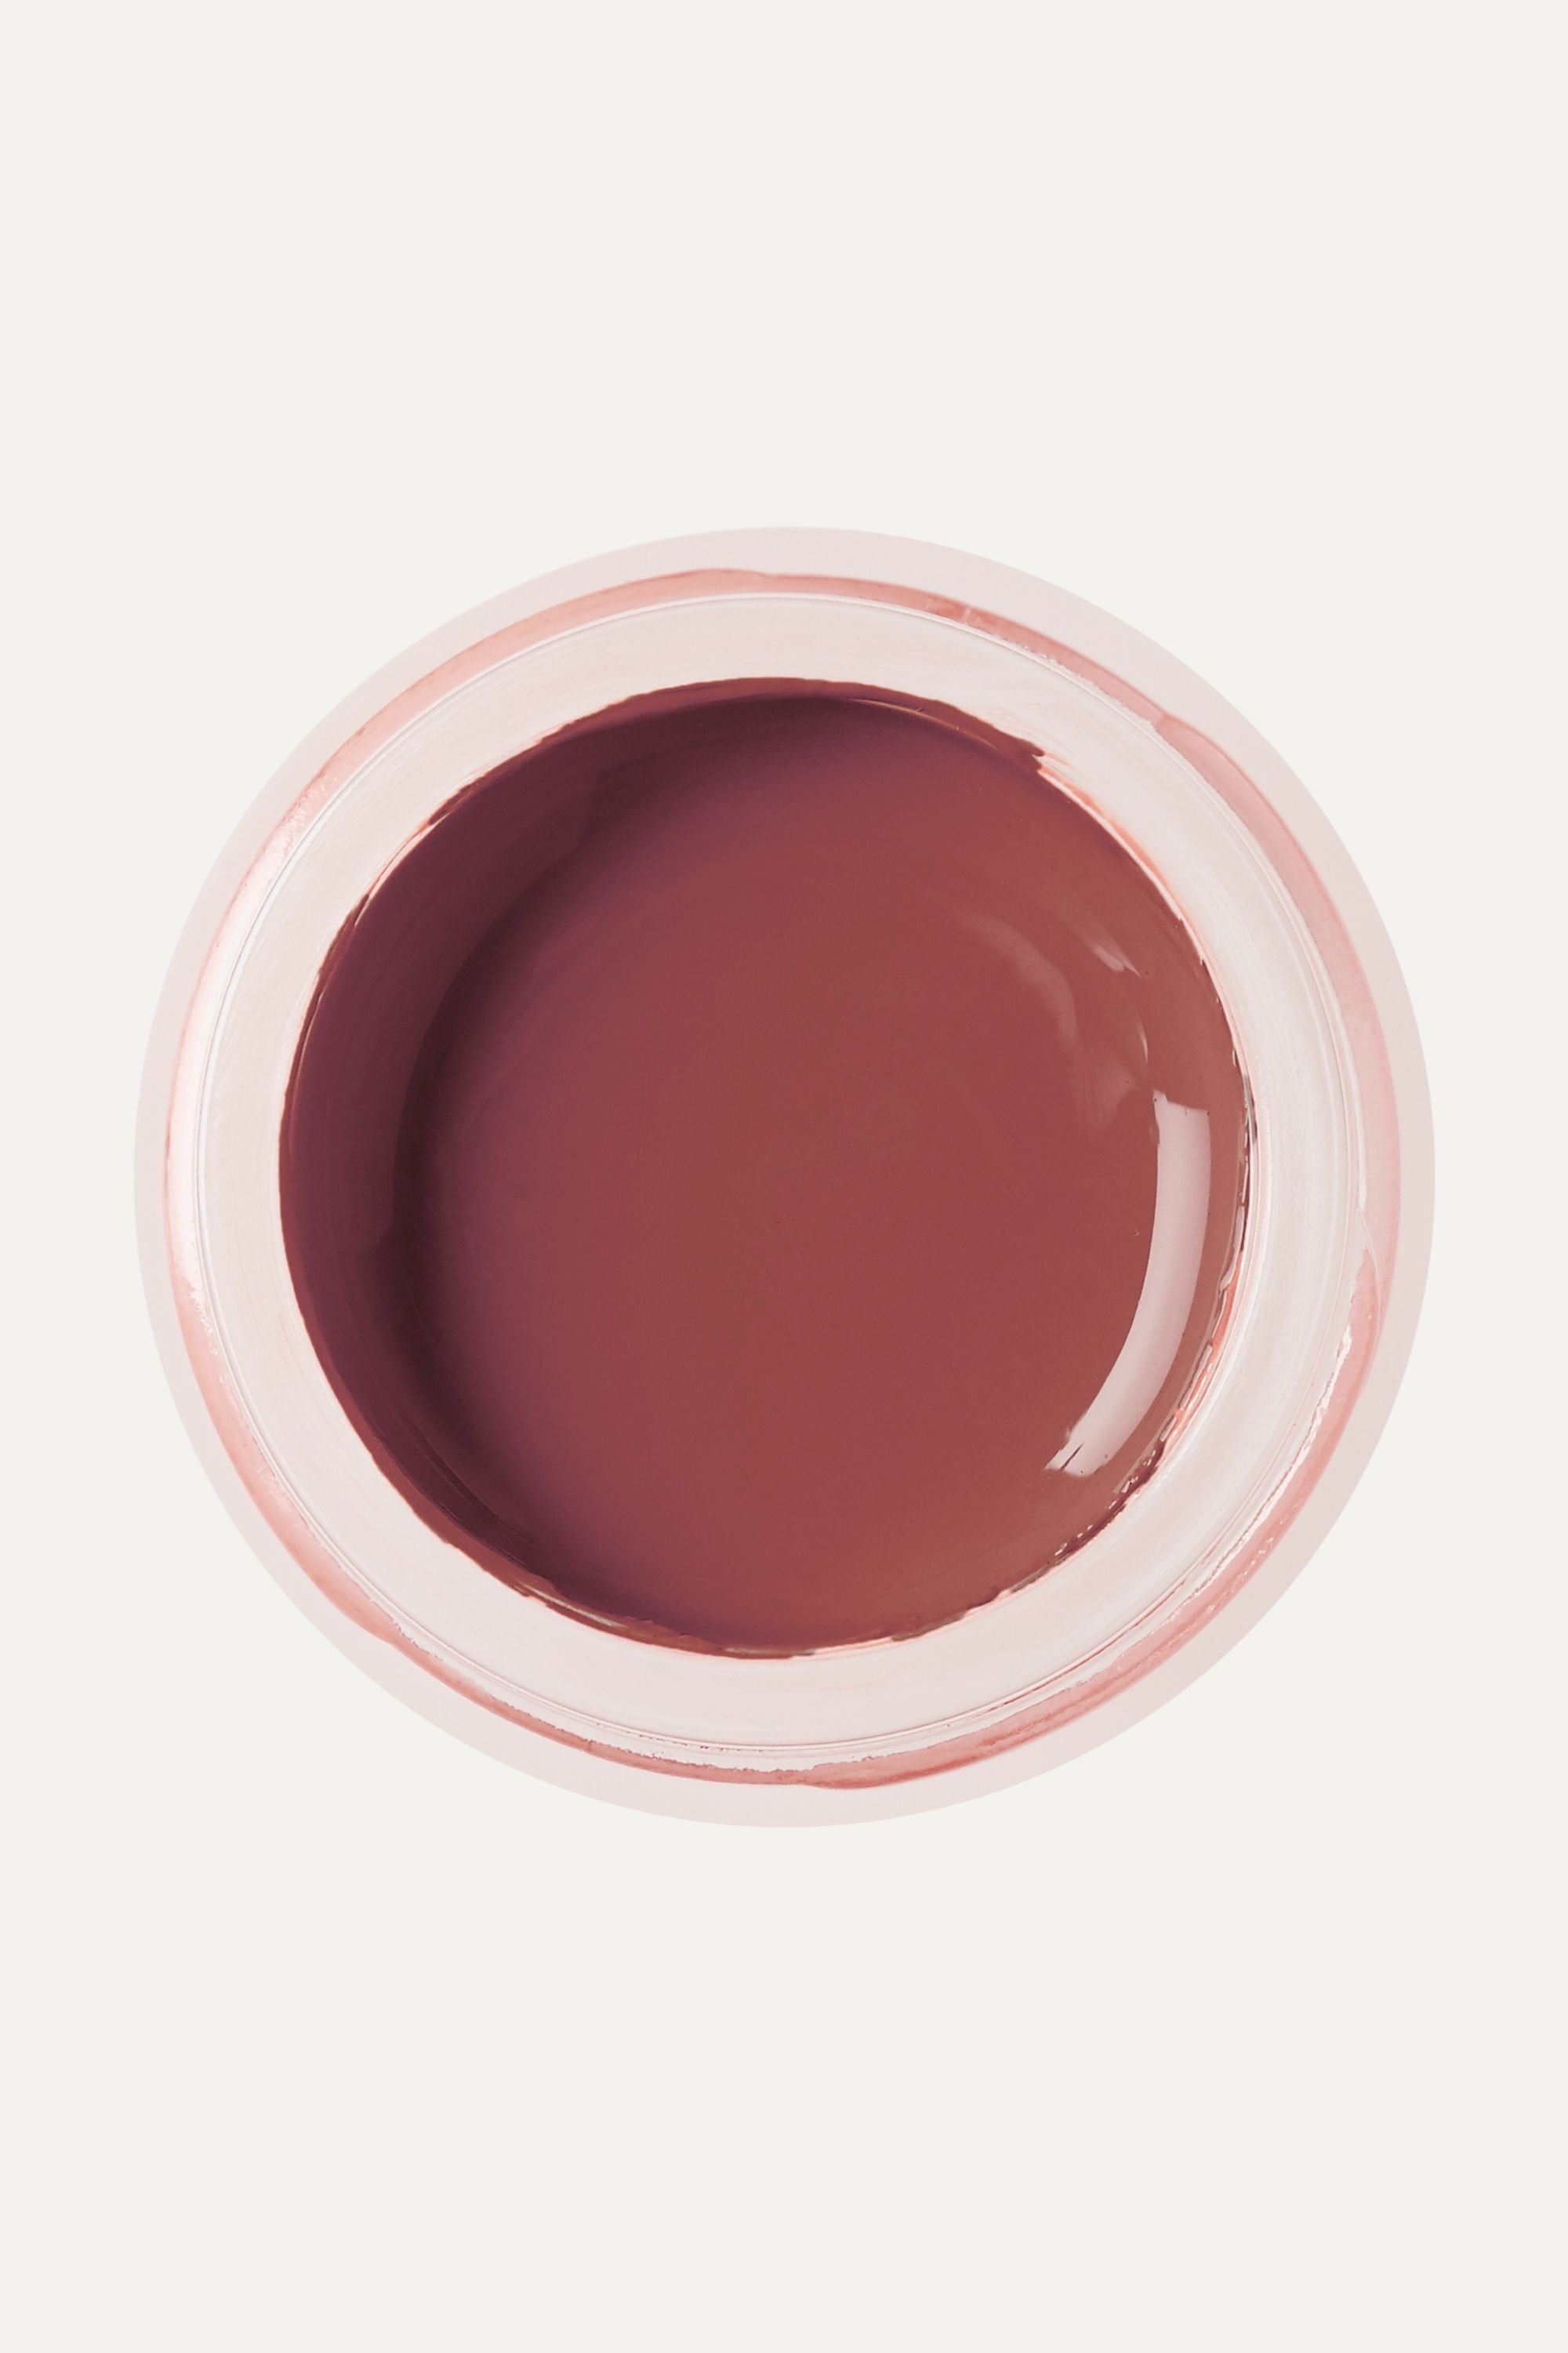 Illamasqua Colour Veil Gel Blusher - Infatuate